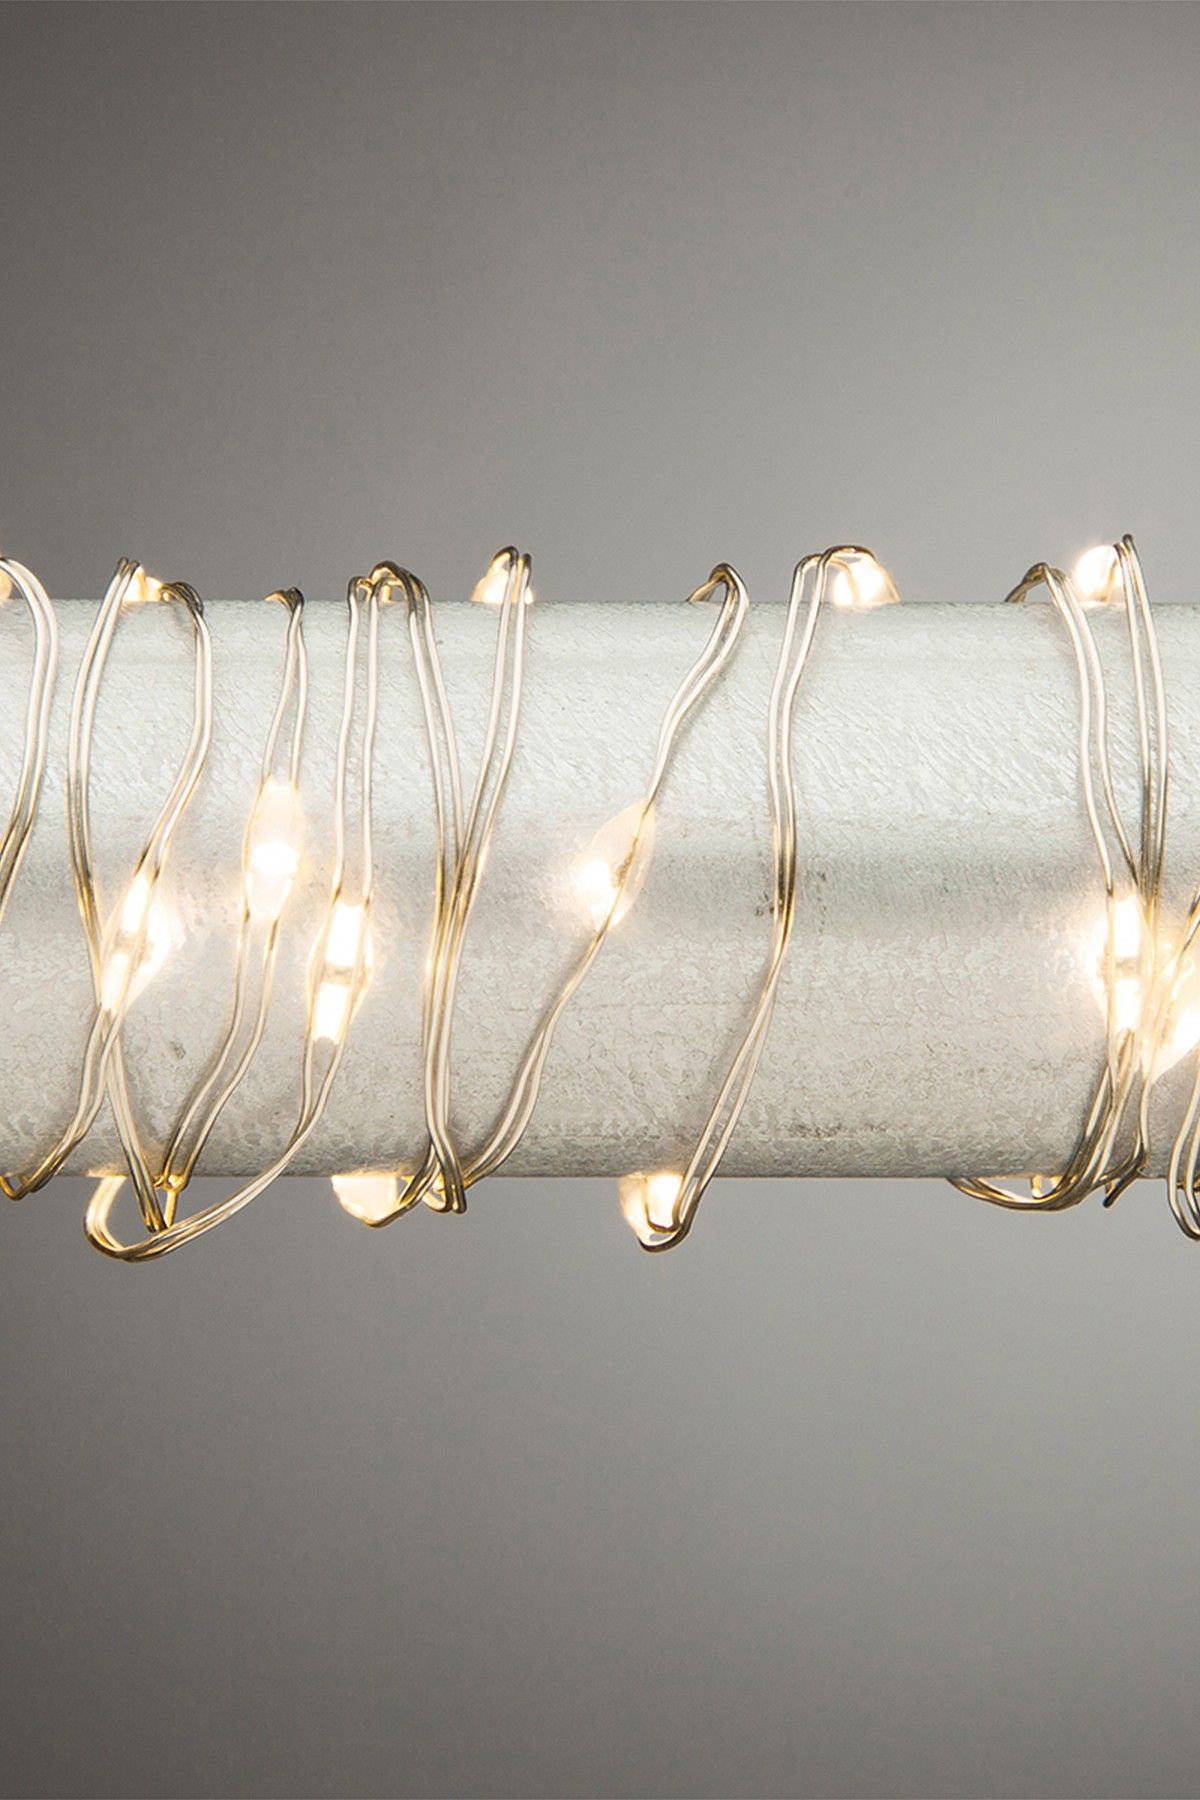 10ft. Silver Wire Outdoor Micro LED Warm White Light Strings by ...